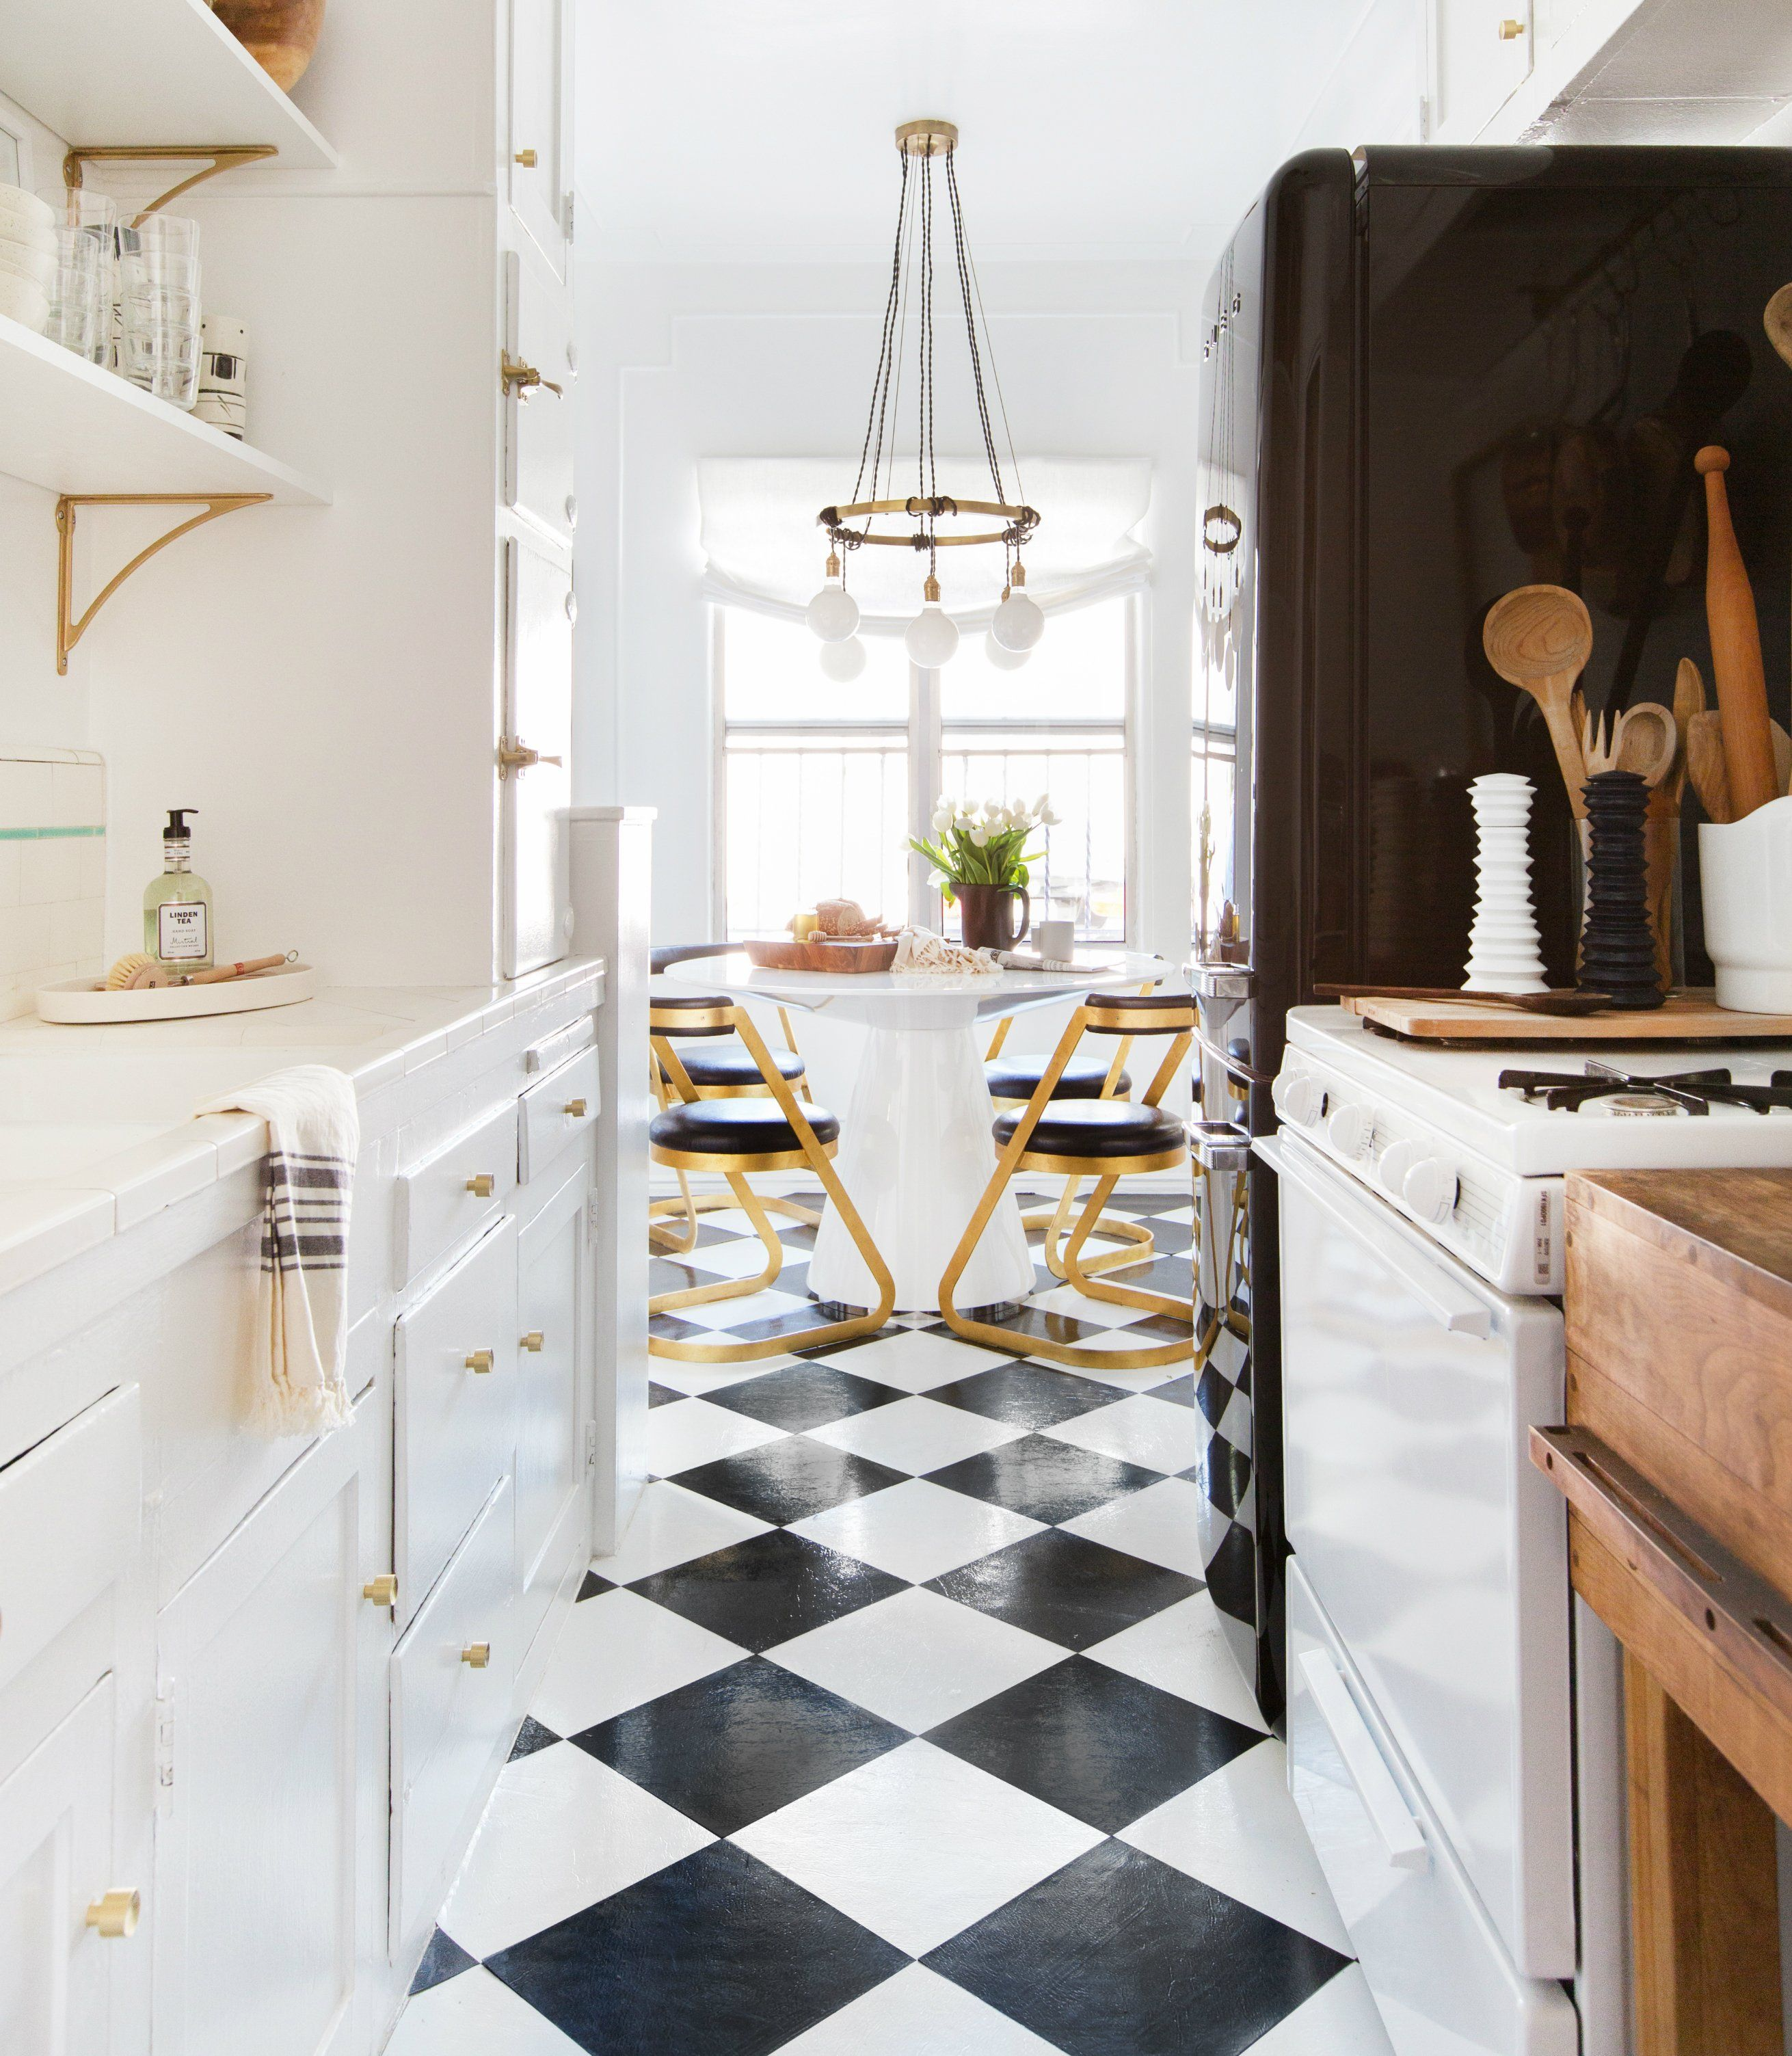 5 Tips On Build Small Kitchen Remodeling Ideas On A Budget: Designer Spotlight: Brady Tolbert